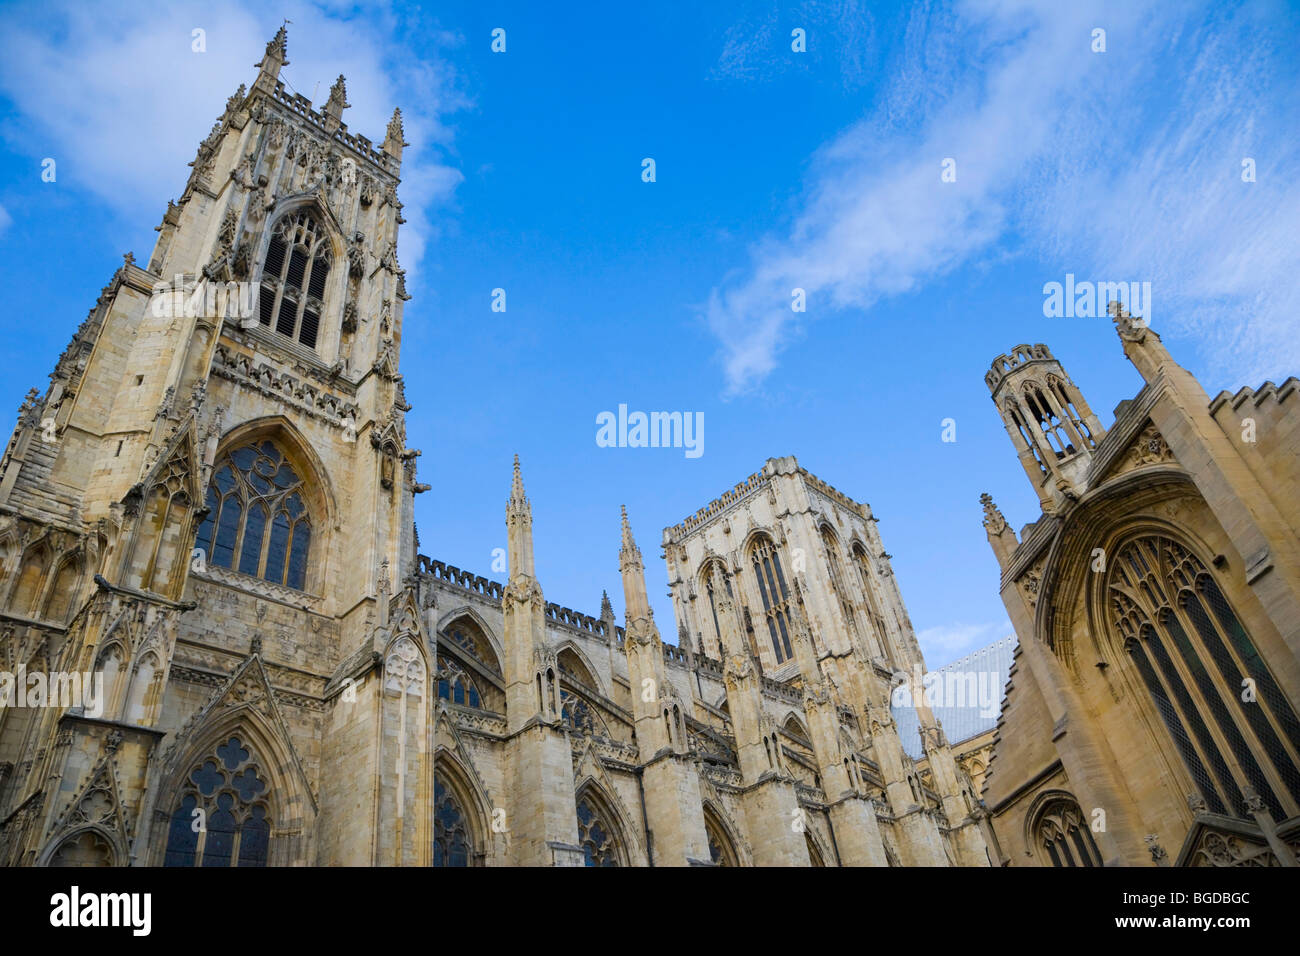 York Minster south face and St Michael le Belfrey Church, York, Yorkshire, England, United Kingdom, Europe - Stock Image